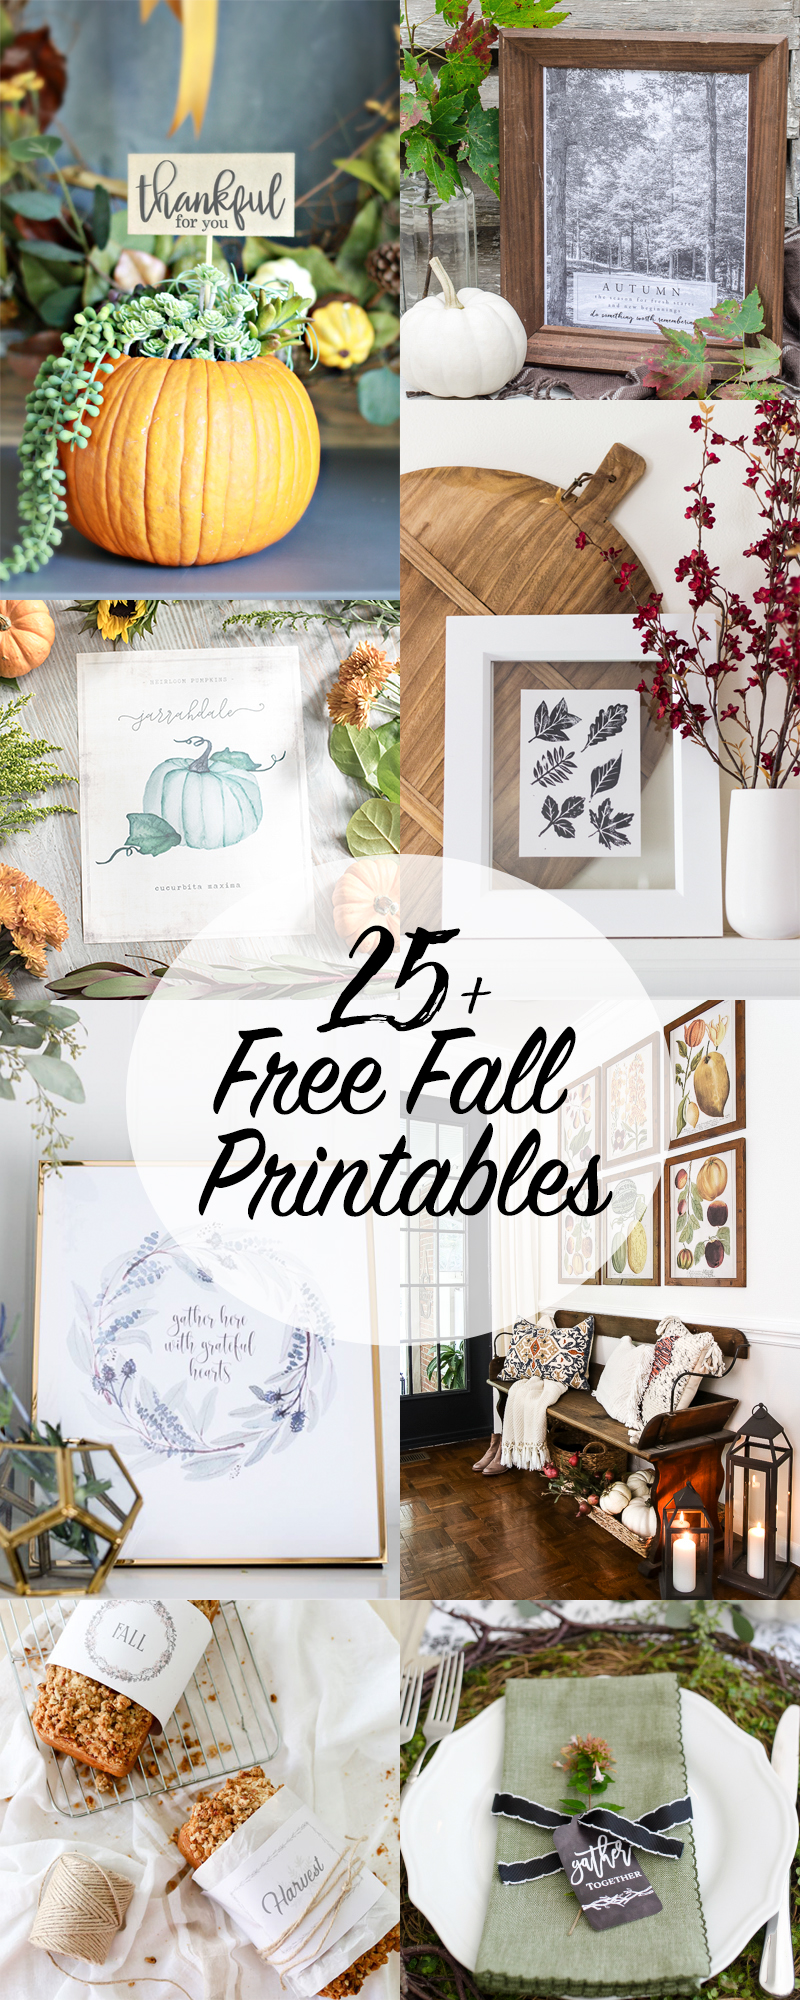 25+ Free Fall Printables - So Much Better With Age